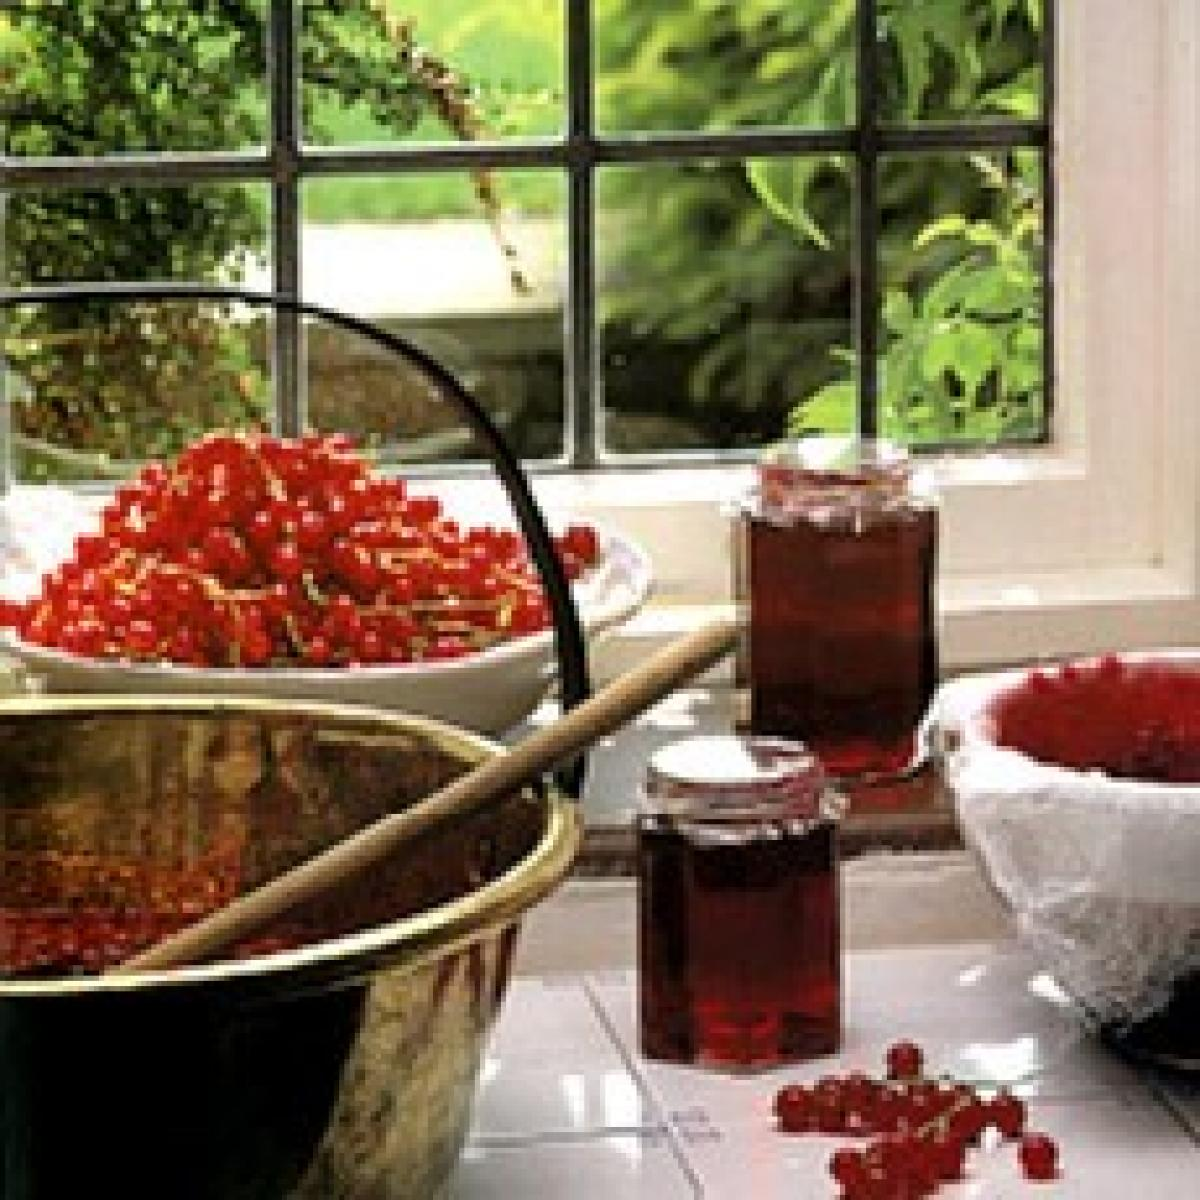 A picture of Delia's Redcurrant Jelly recipe